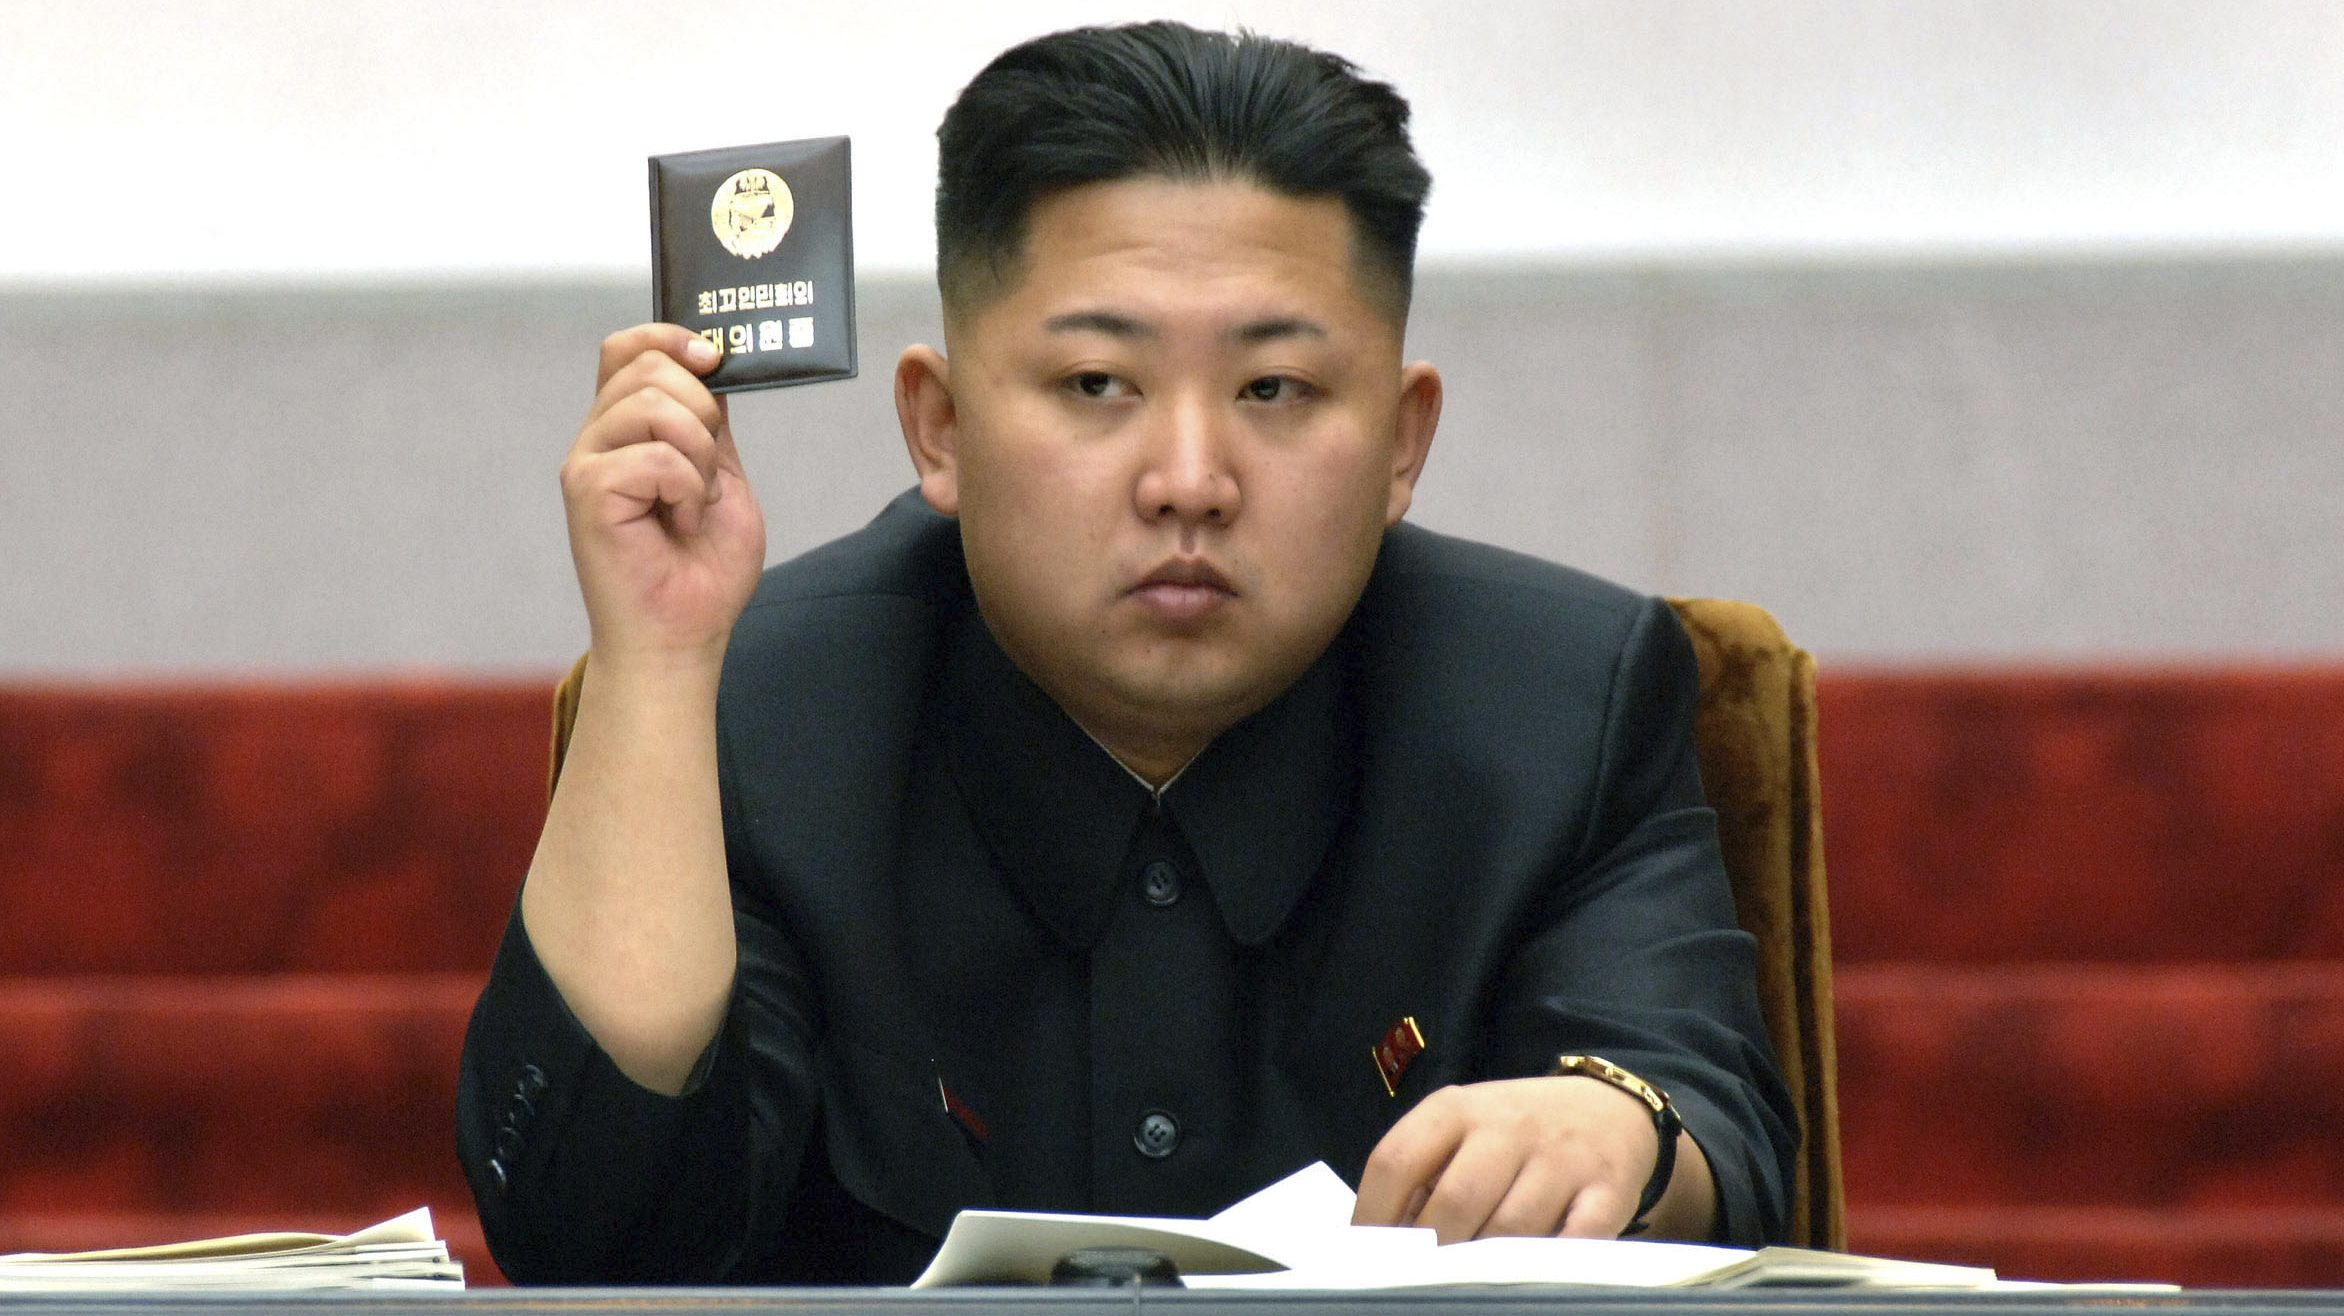 North Korean leader Kim Jong-Un holds up his ballot during the fifth session of the 12th Supreme People's Assembly of North Korea at the Mansudae Assembly Hall in Pyongyang April 13, 2012, in this picture released by the North's KCNA on April 14, 2012. REUTERS/KCNA (NORTH KOREA - Tags: POLITICS TPX IMAGES OF THE DAY) QUALITY FROM SOURCE. THIS IMAGE HAS BEEN SUPPLIED BY A THIRD PARTY. IT IS DISTRIBUTED, EXACTLY AS RECEIVED BY REUTERS, AS A SERVICE TO CLIENTS. NO THIRD PARTY SALES. NOT FOR USE BY REUTERS THIRD PARTY DISTRIBUTORS - RTR30PN7